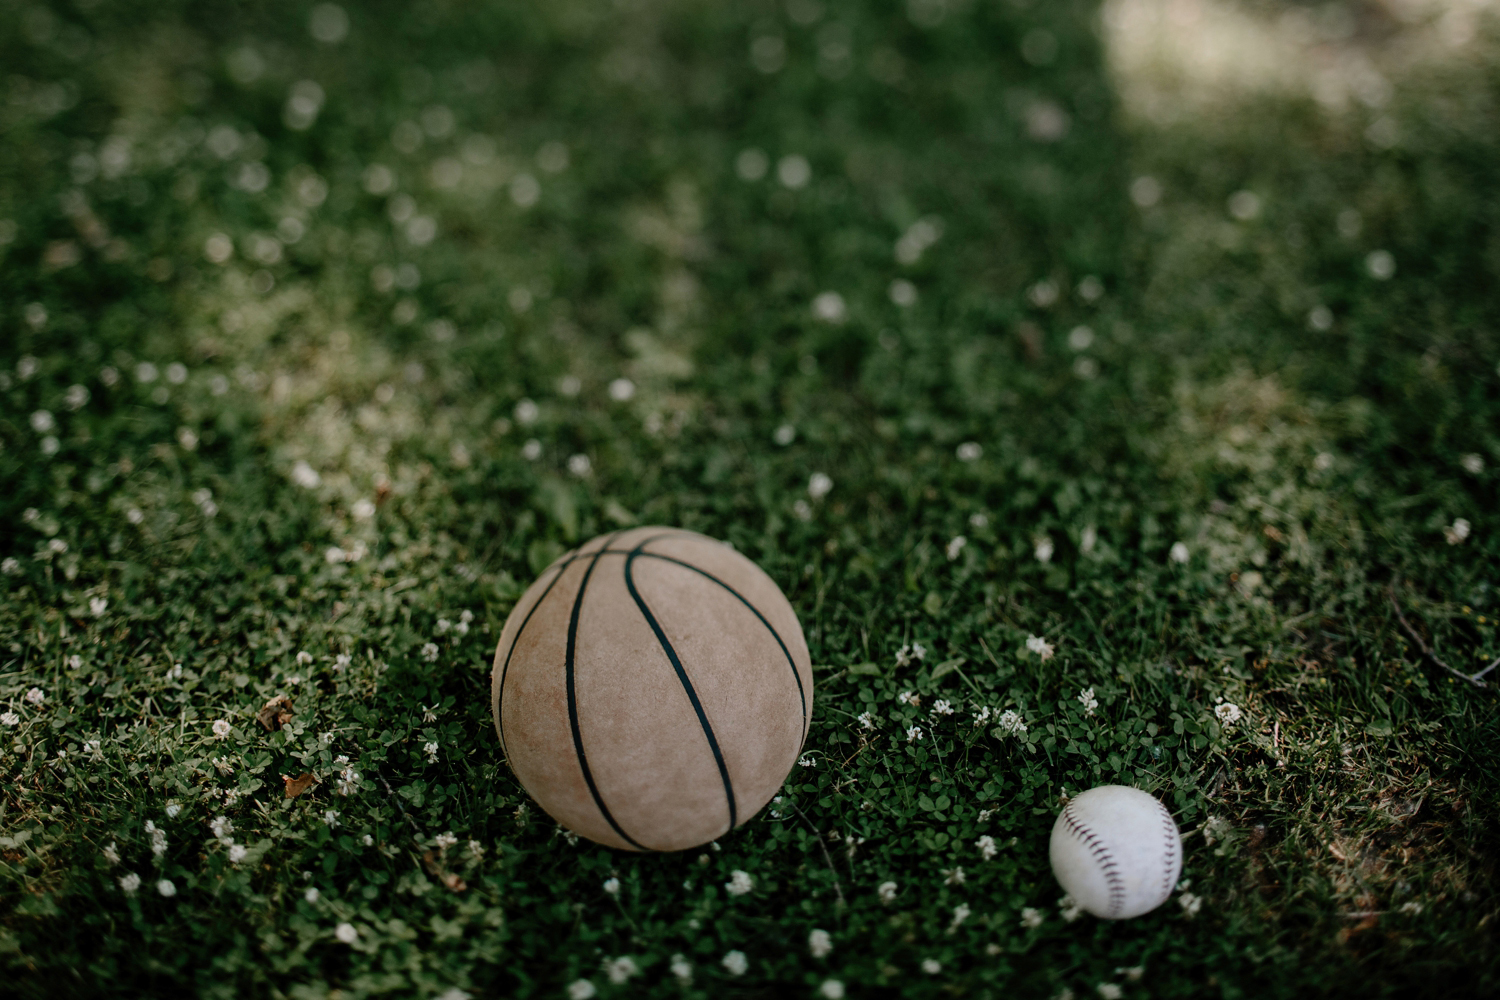 basketball and softball laying on ground